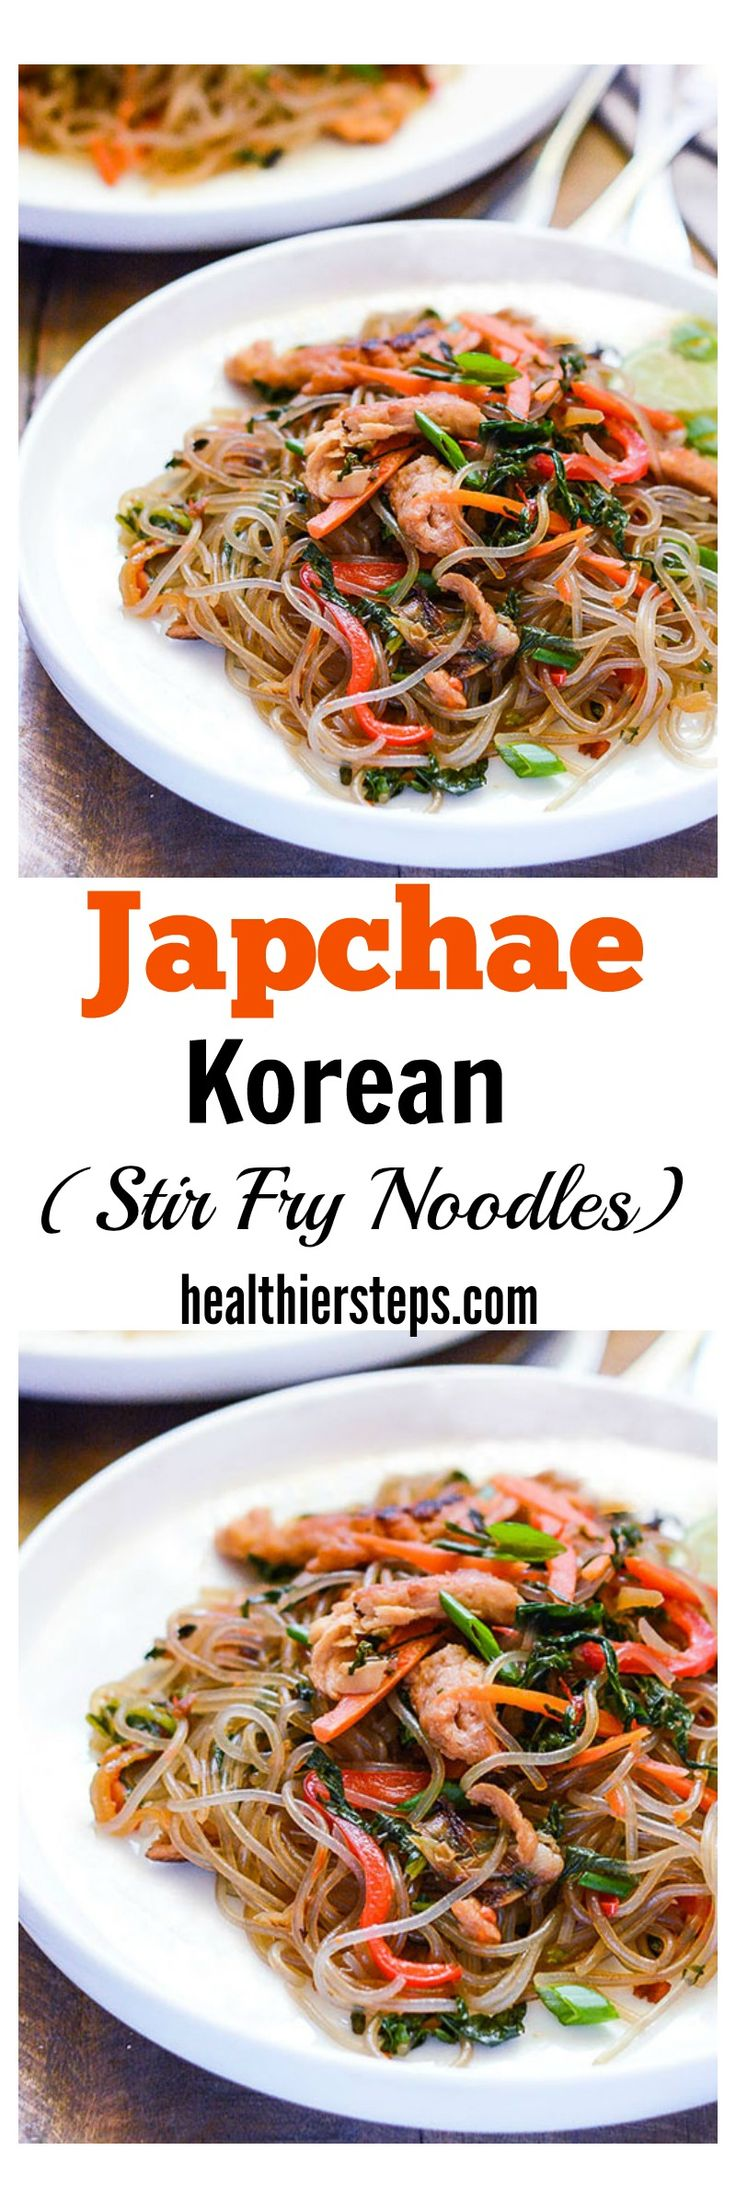 This Japchae (Korean Stir Fried Noodles) is so easy to prepare and tastes amazing! Sweet potato noodles stir fried with onions, garlic, bell pepper, carrot and greens tossed with an easy to prepare sauce.